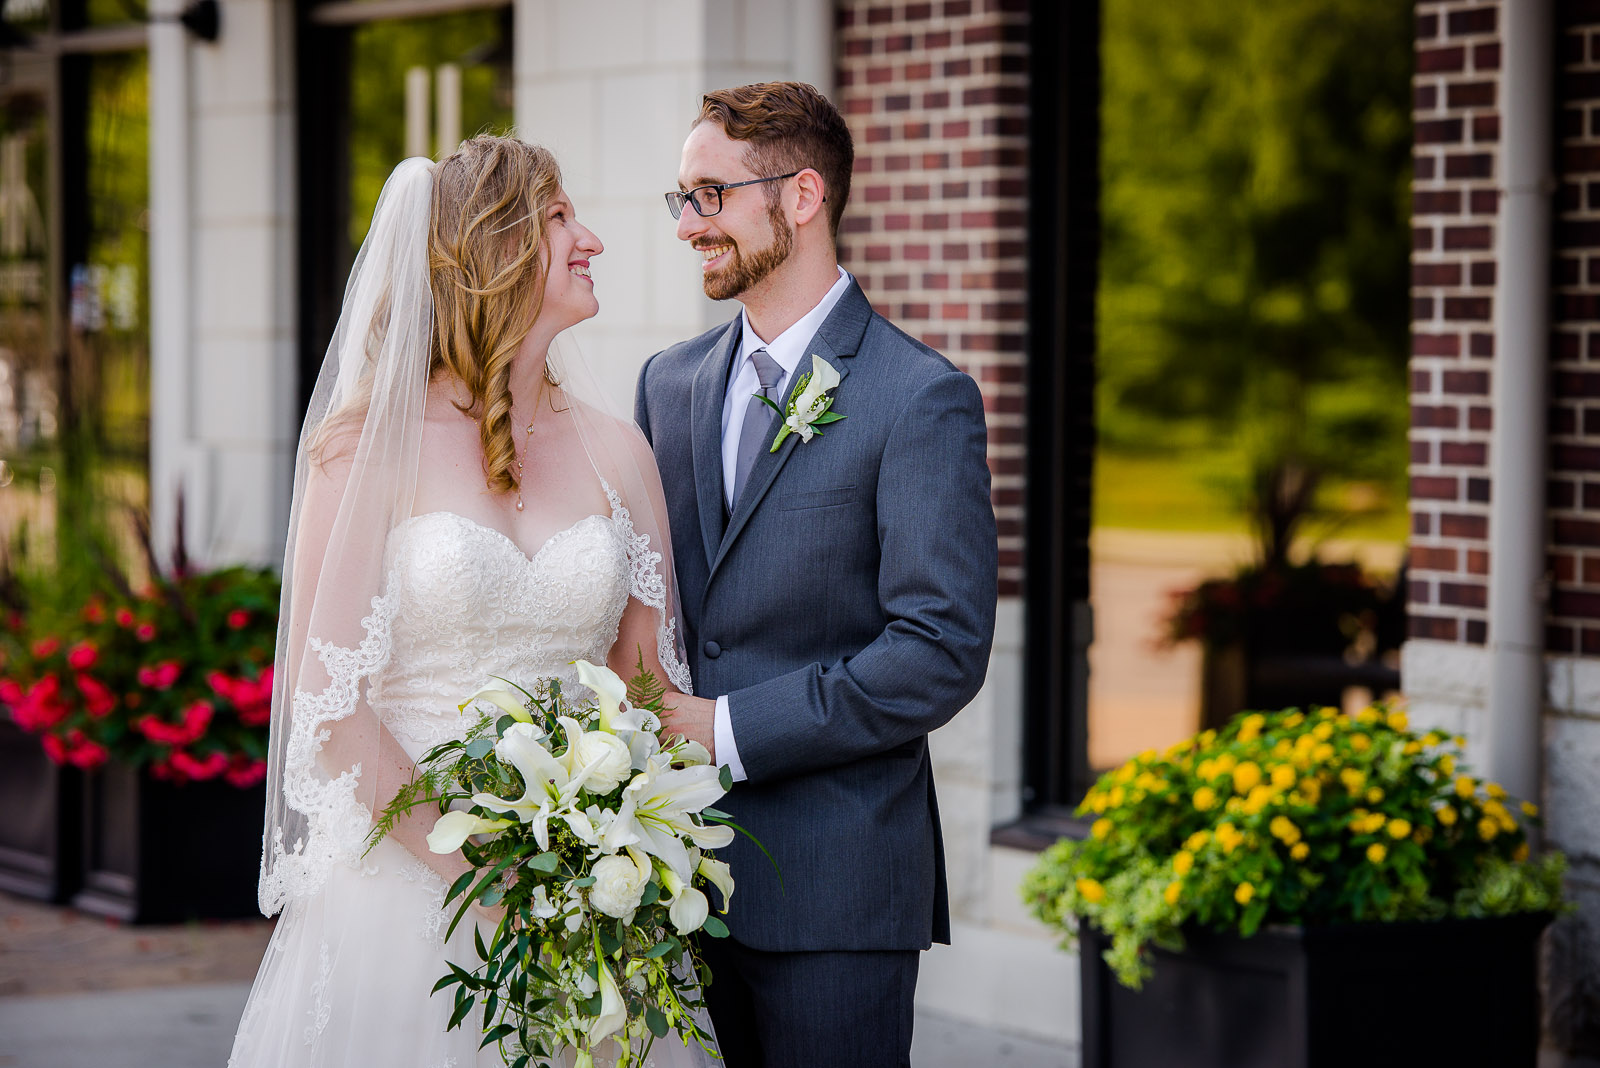 Eric_and_Christy_Photography_Blog_2018_Portraits-19